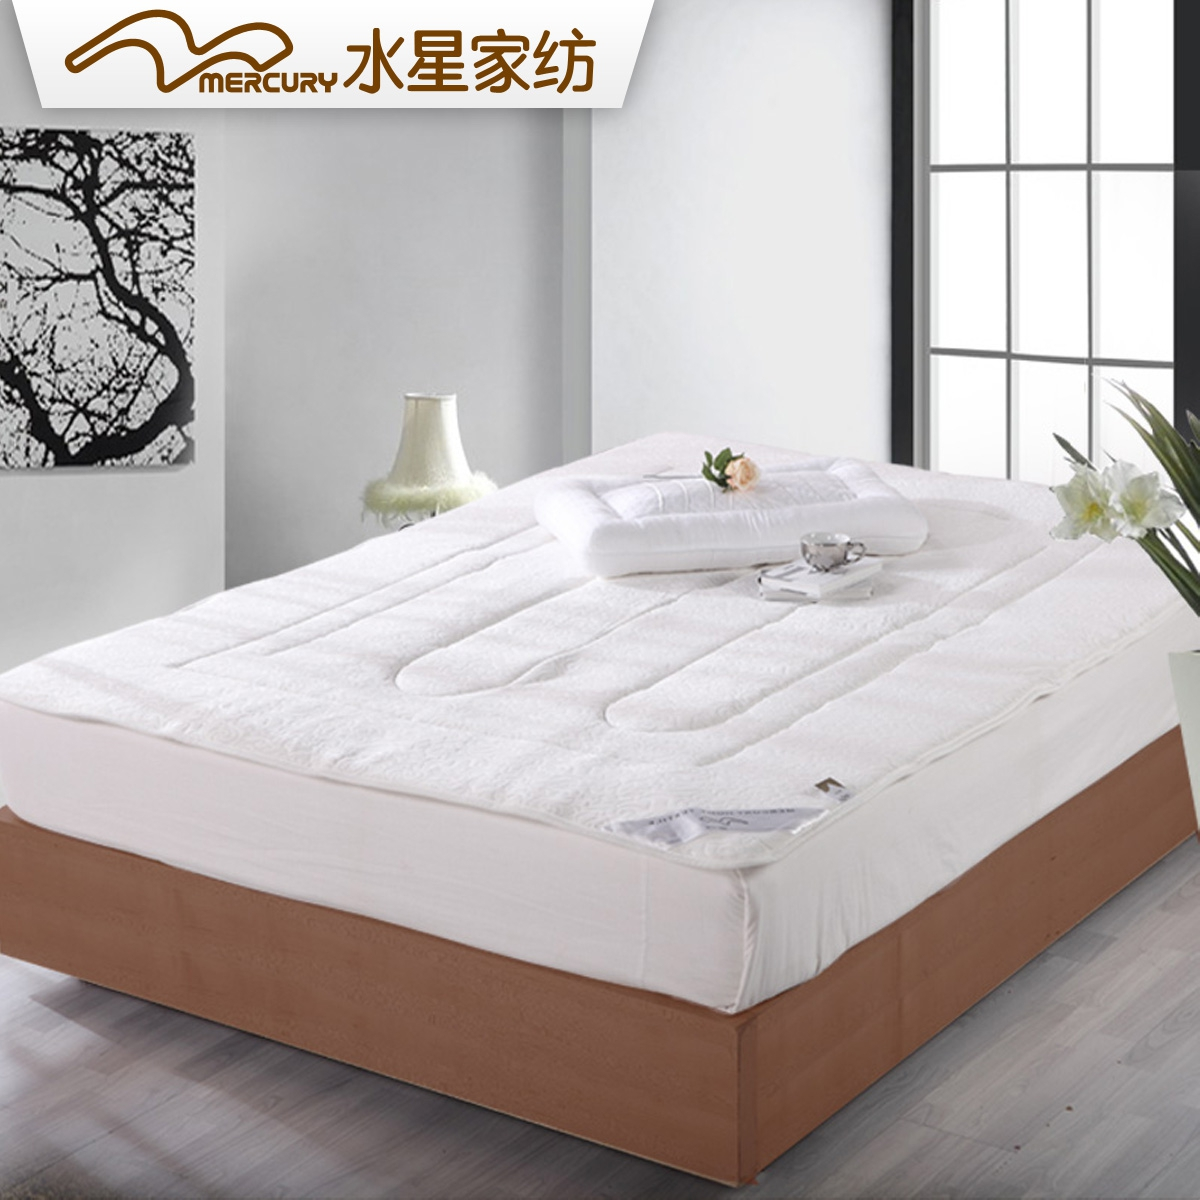 Mercury textile silk anion mattress double bed mattress bedding